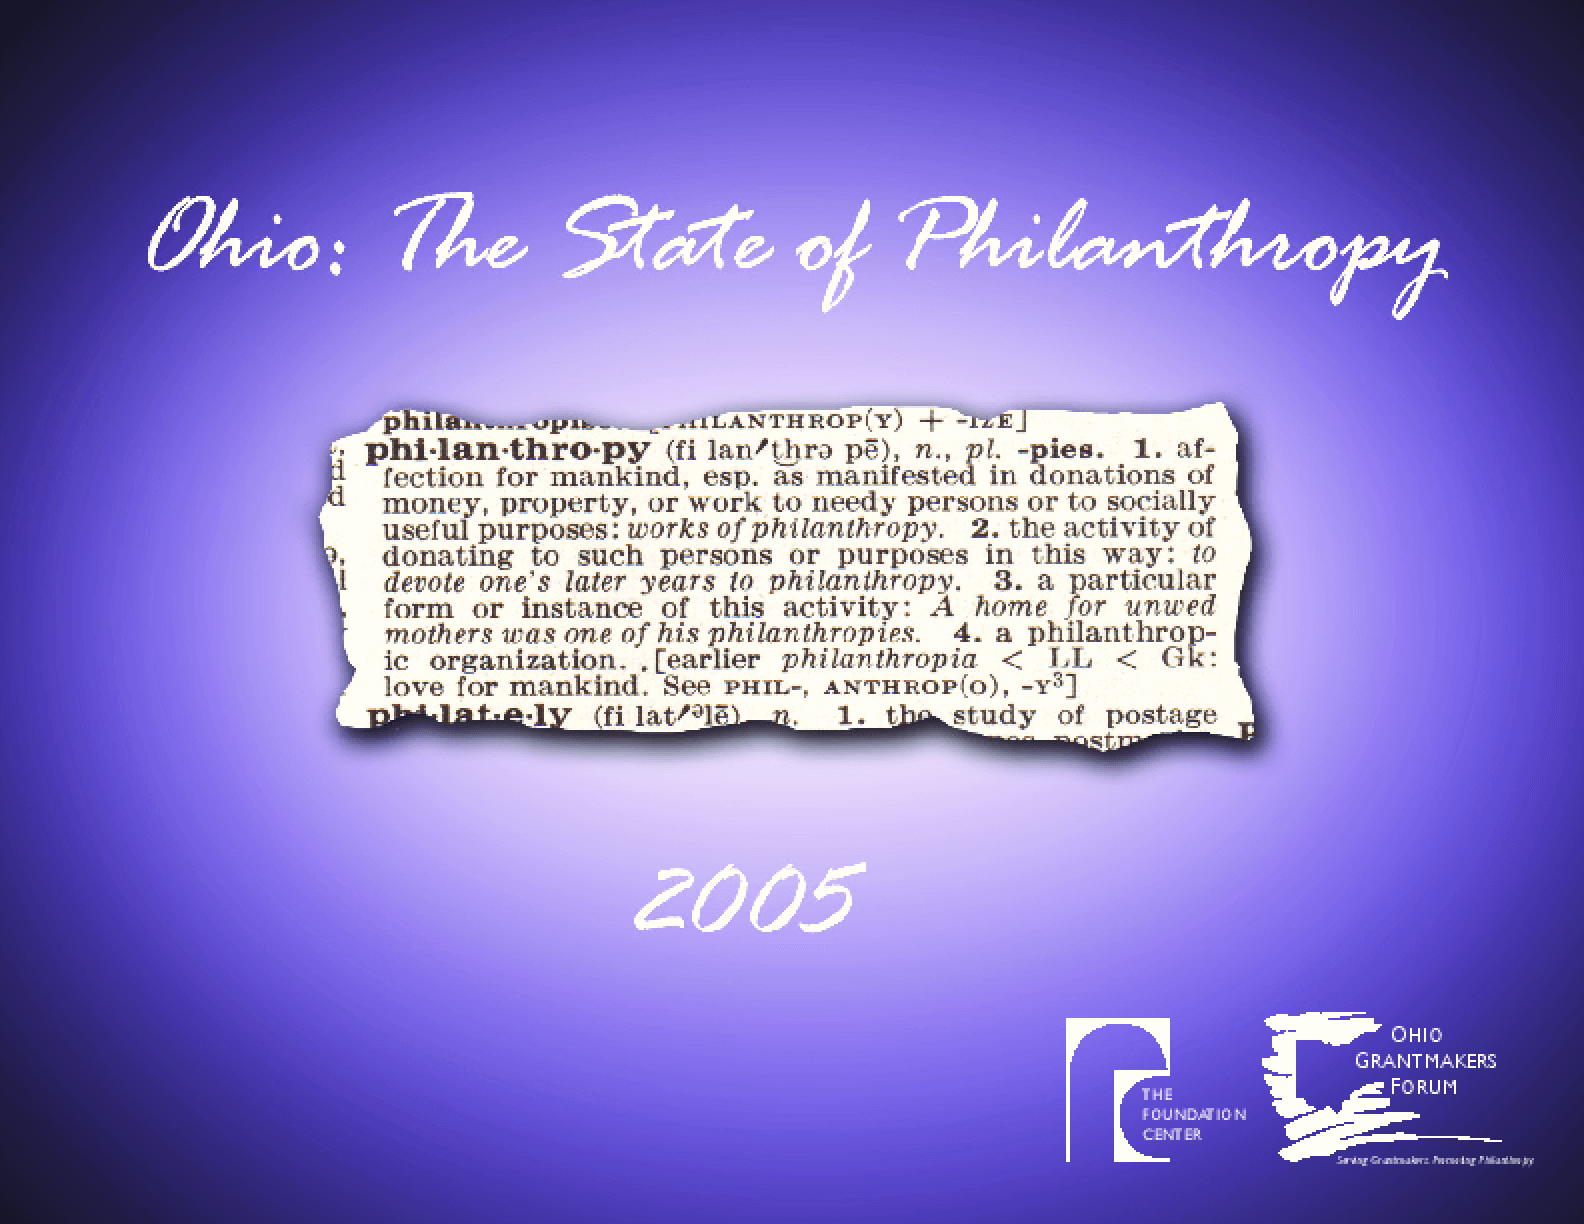 Ohio: The State of Philanthropy